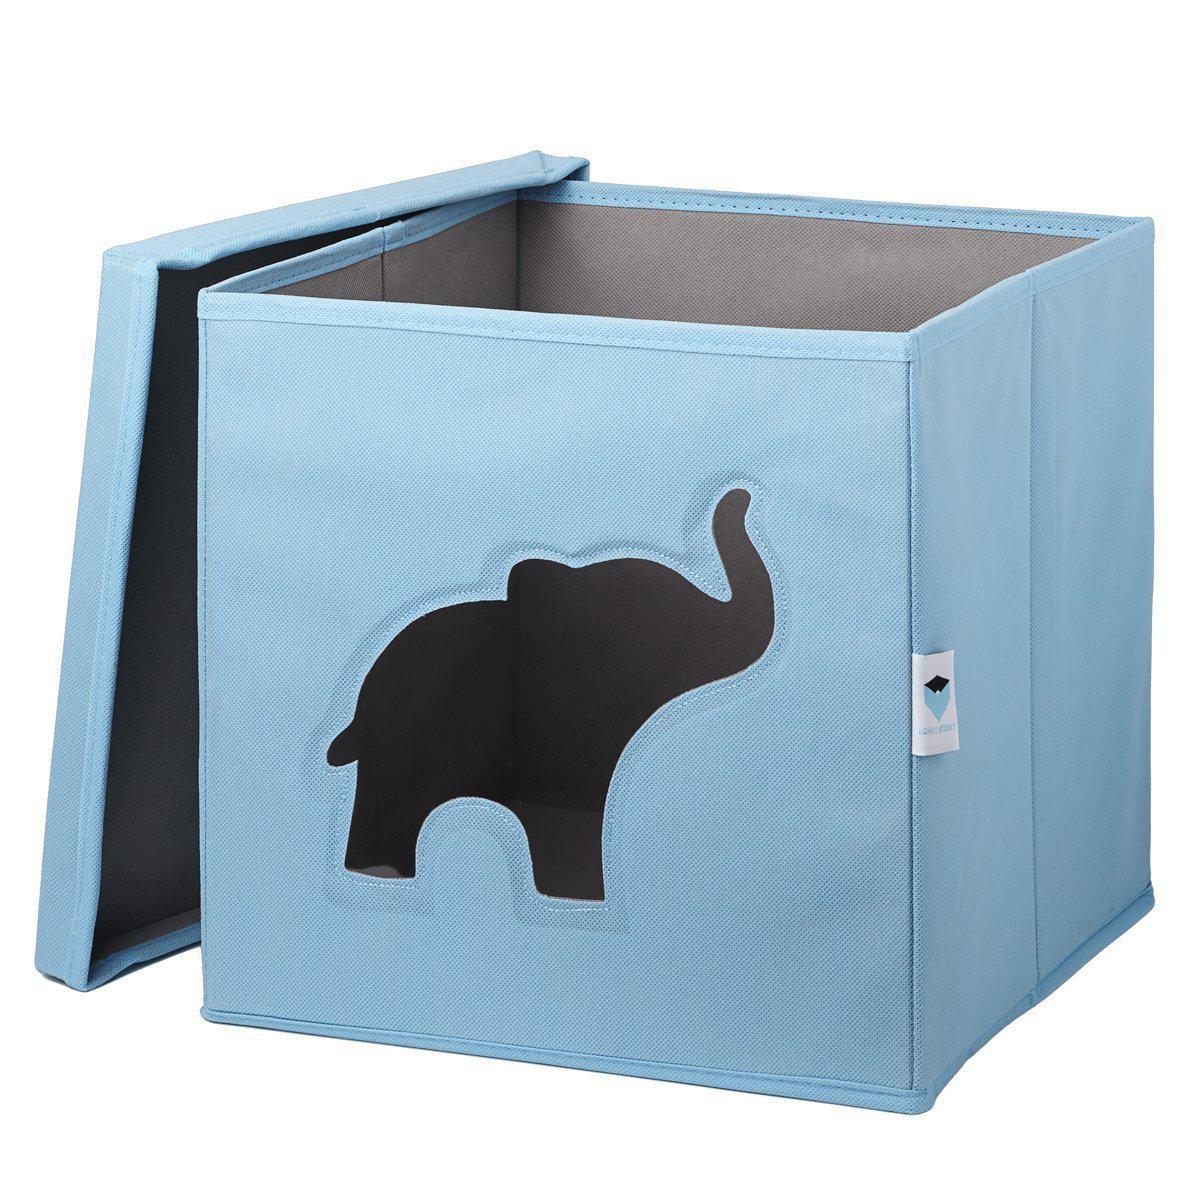 spielzeugkiste elefant hellblau grau ordnung im kinderzimmer im kinderlampenland. Black Bedroom Furniture Sets. Home Design Ideas